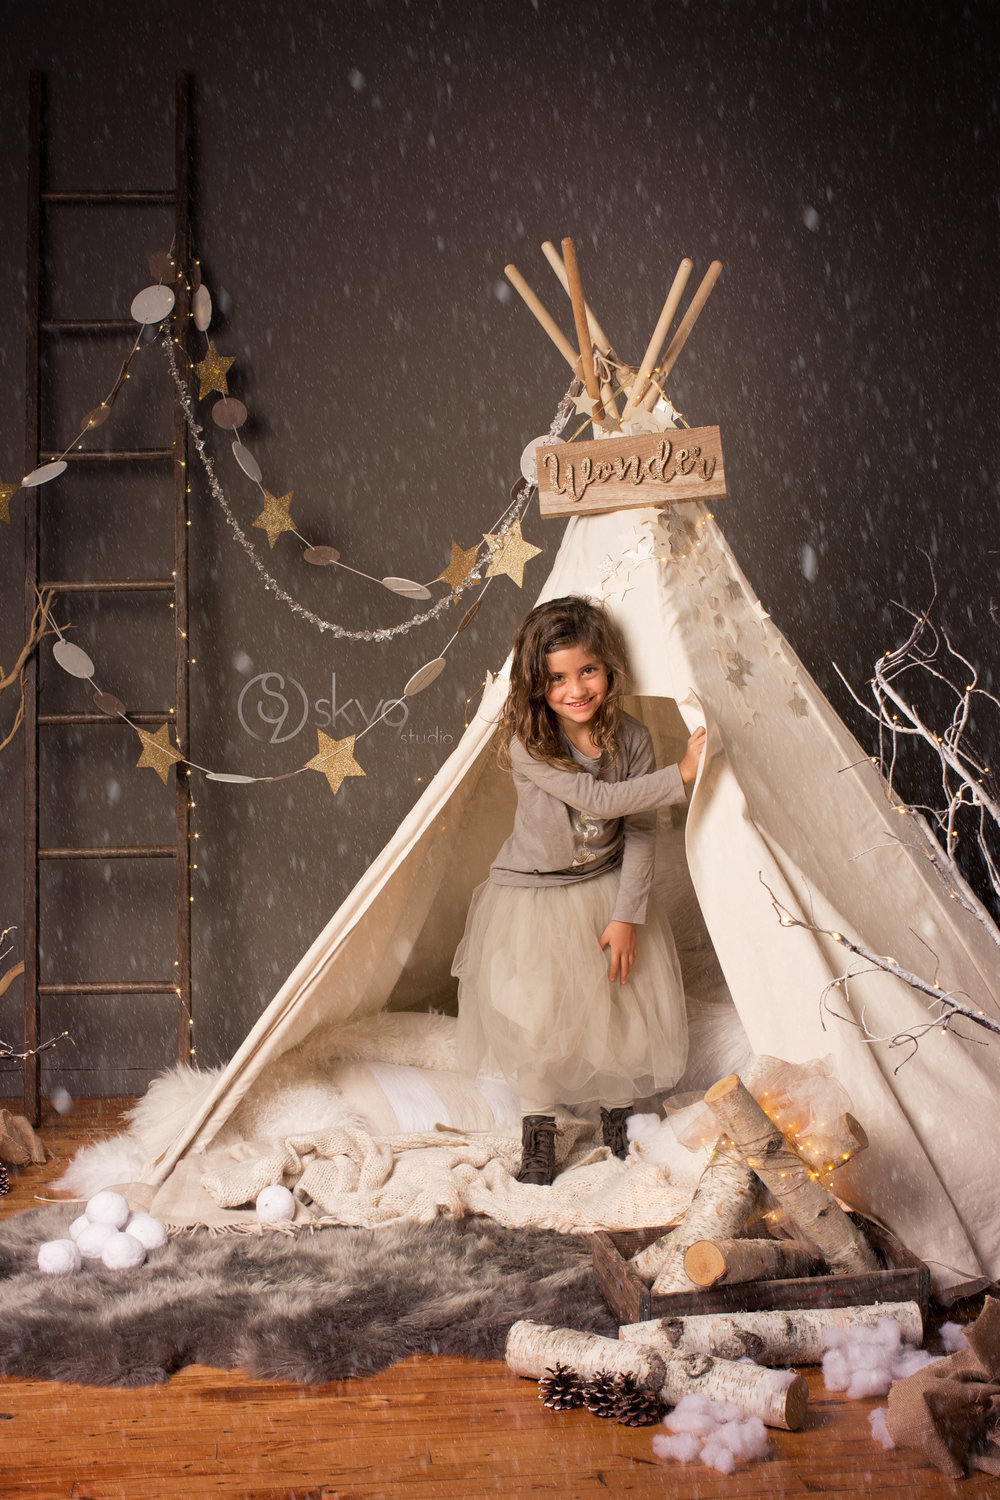 Girl stepping out of tent in a Restoration Hardware style winter mini-session photography set with stars and snow